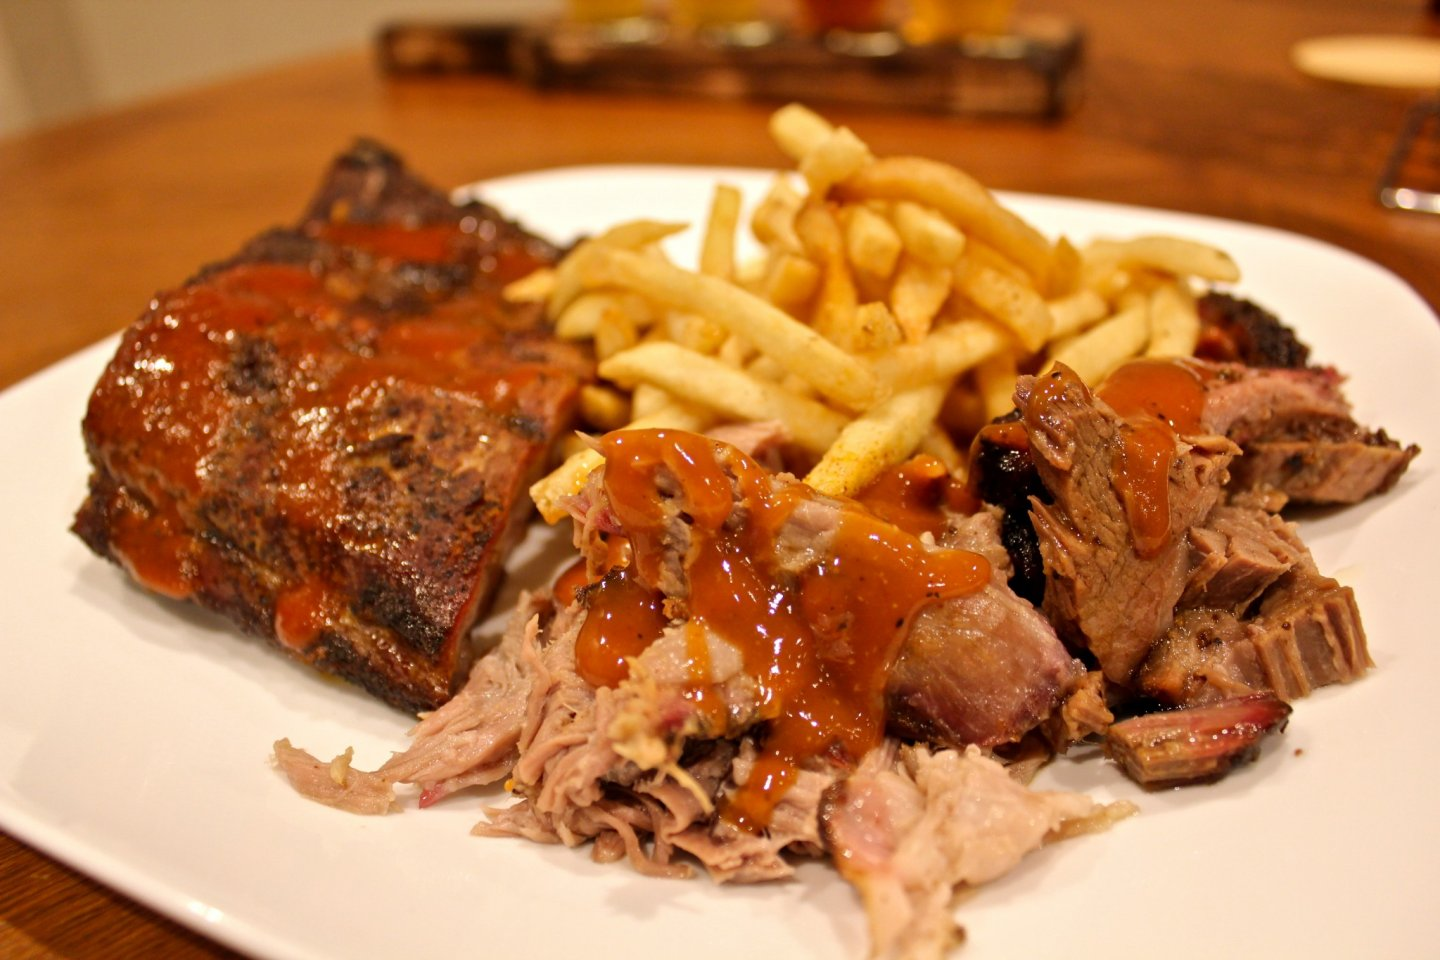 The 3 Meat BBQ Plate Set includes Baby Back Ribs, Beef Brisket, and Pulled Pork. Served with your choice of Seasoned Fries or Creole Potato Salad. 1,500yen